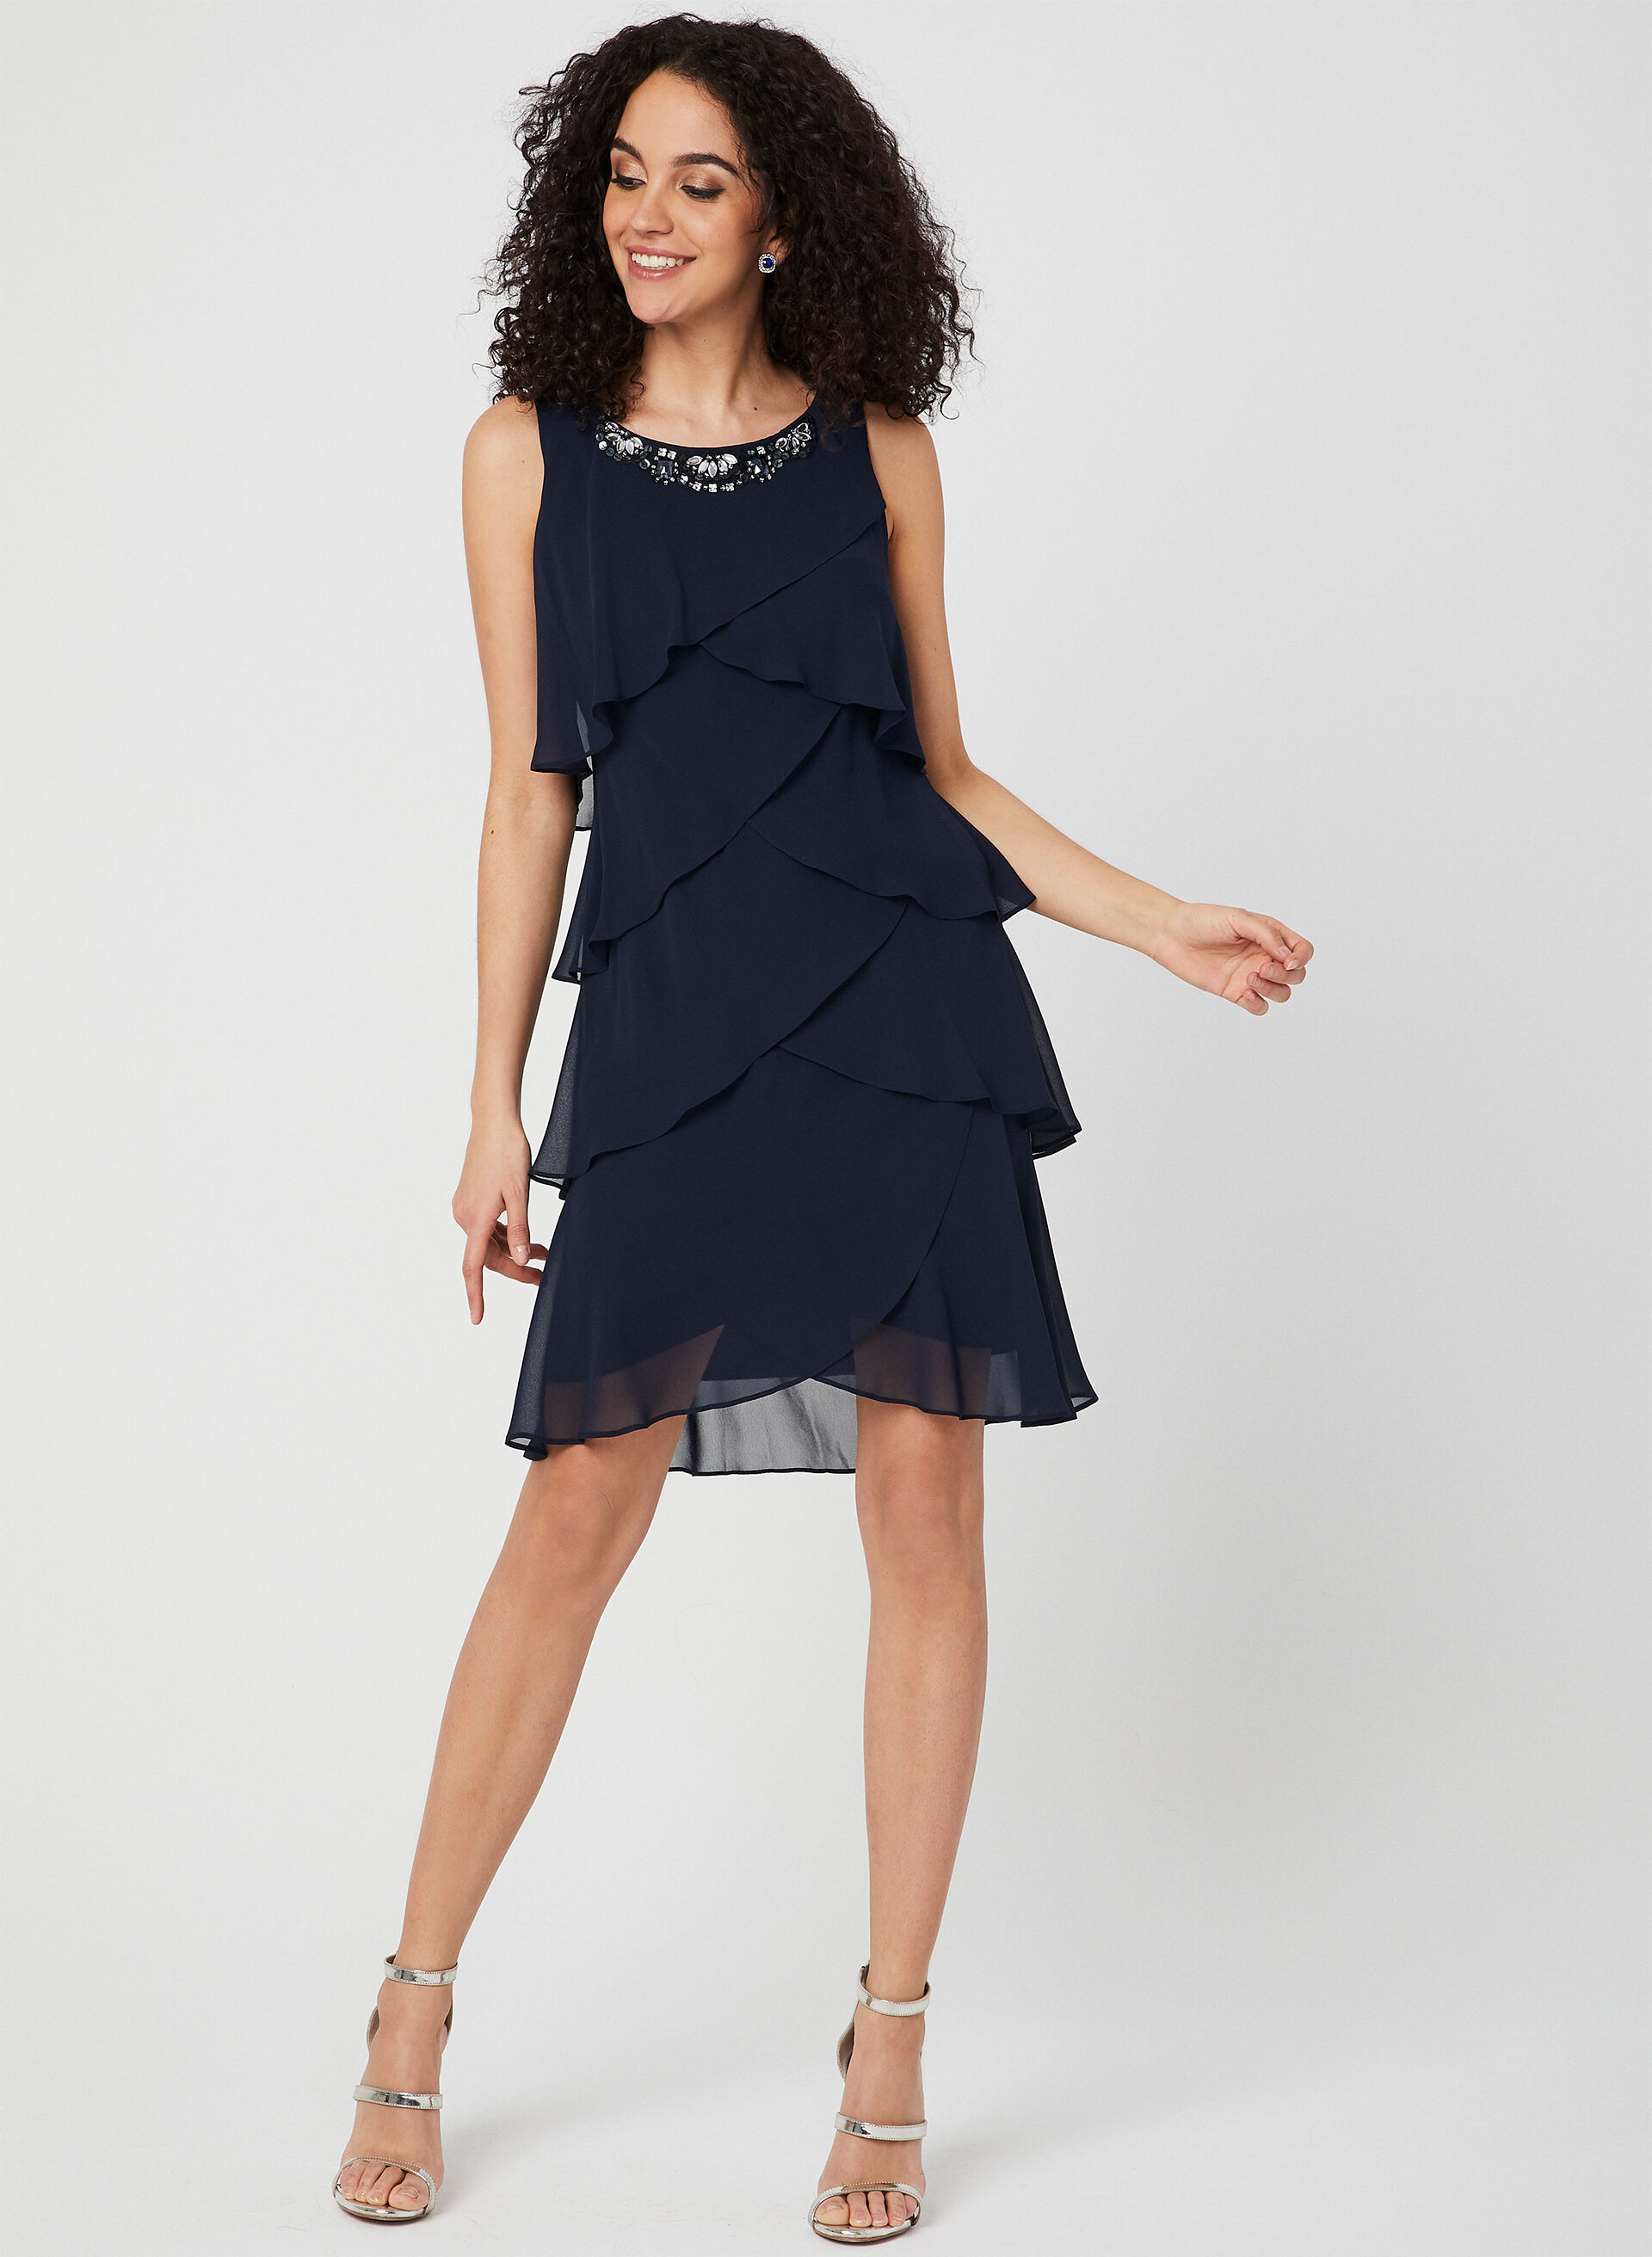 Ruffle Waist Dress